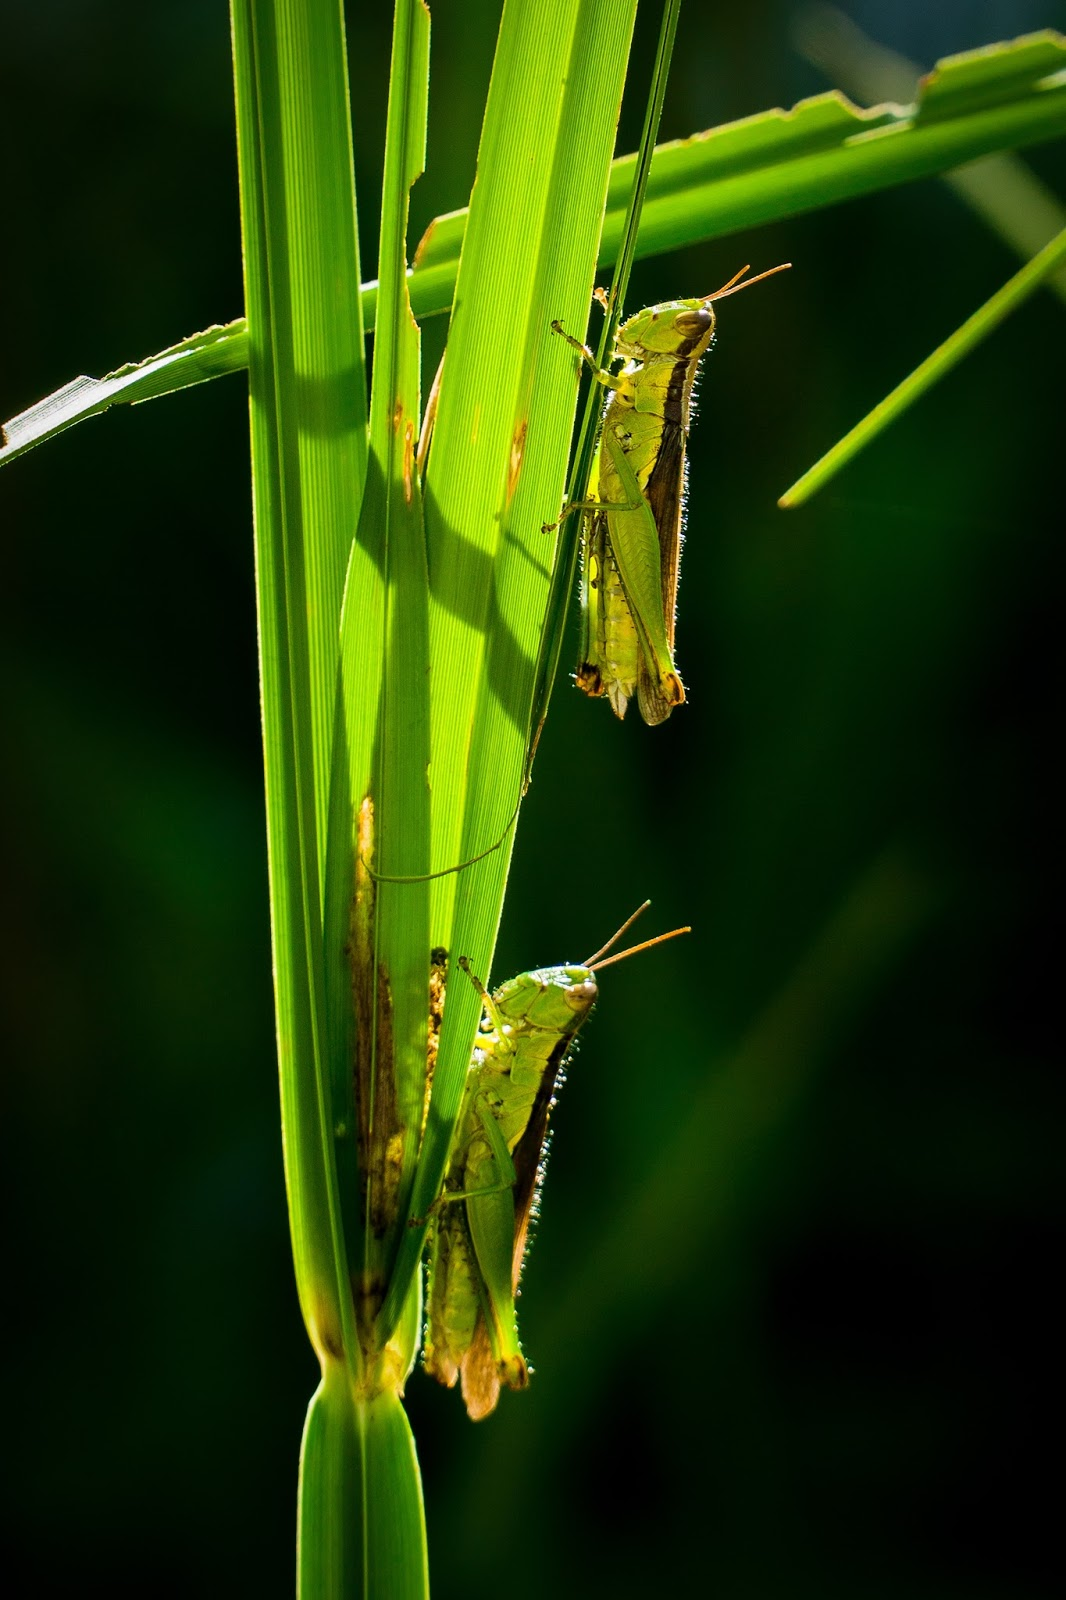 Picture of a pair of grasshoppers climbing grass.